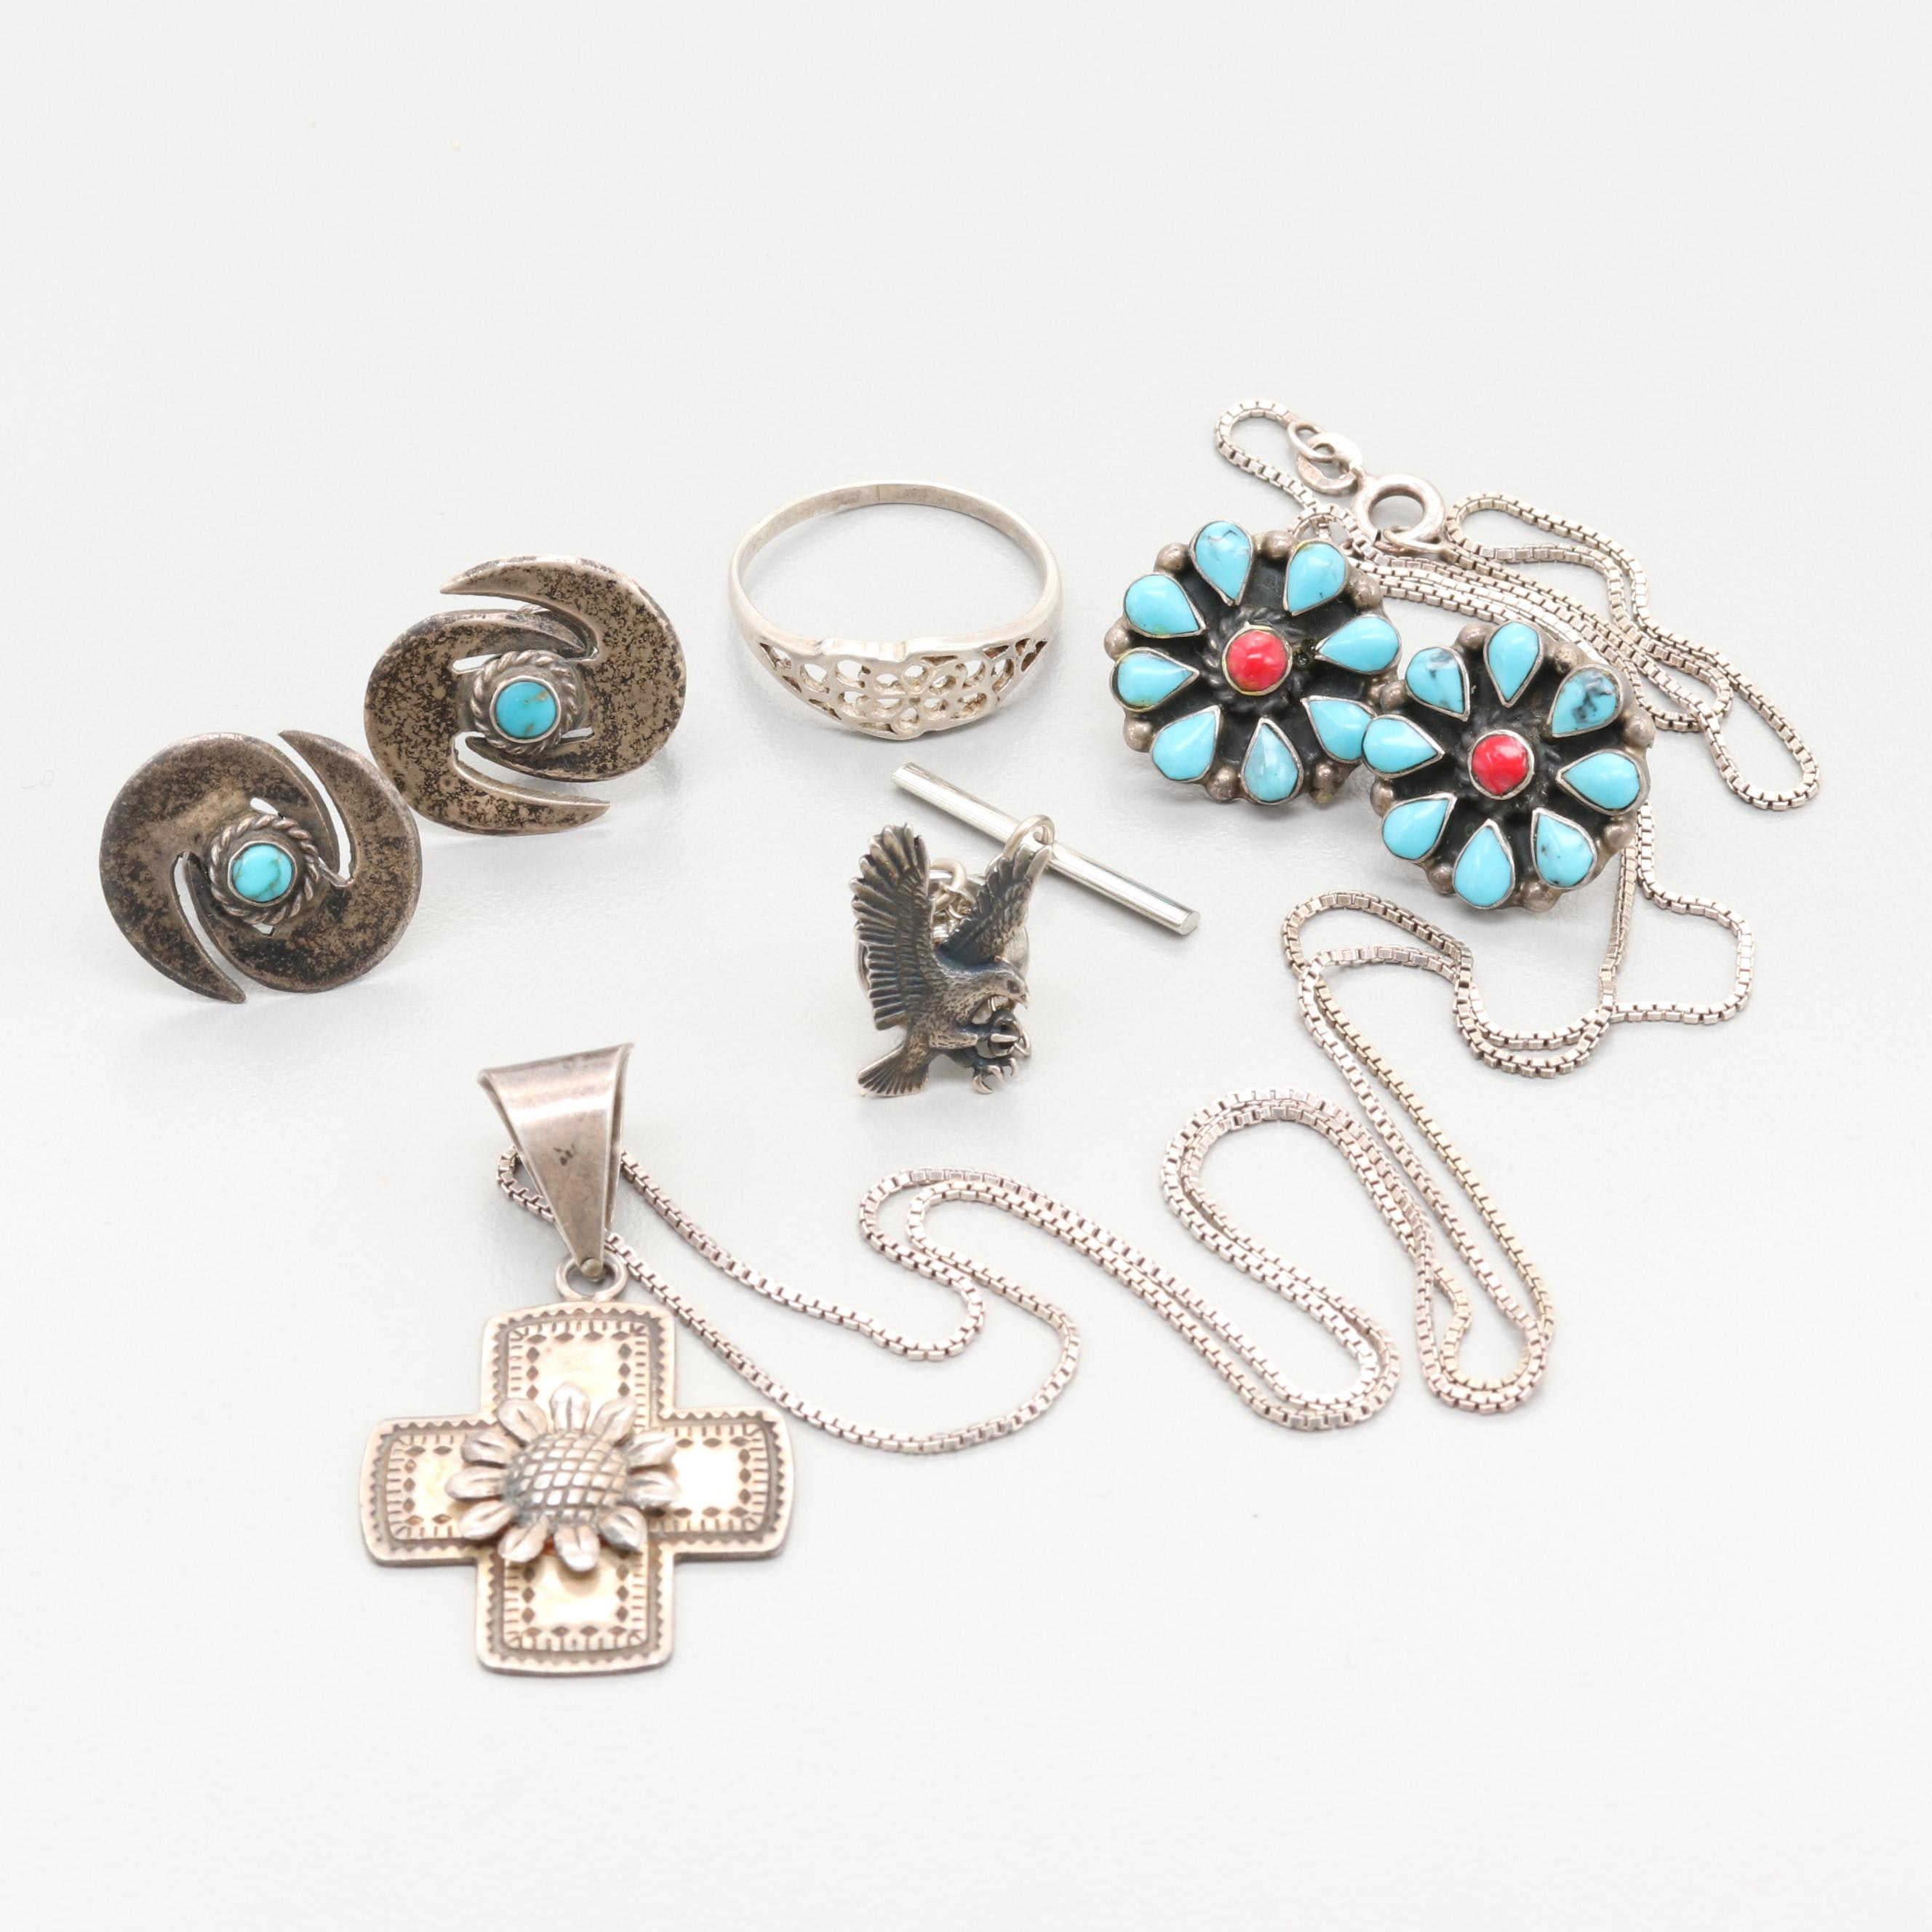 Mexican Sterling Silver Jewelry Including Imitation Stones